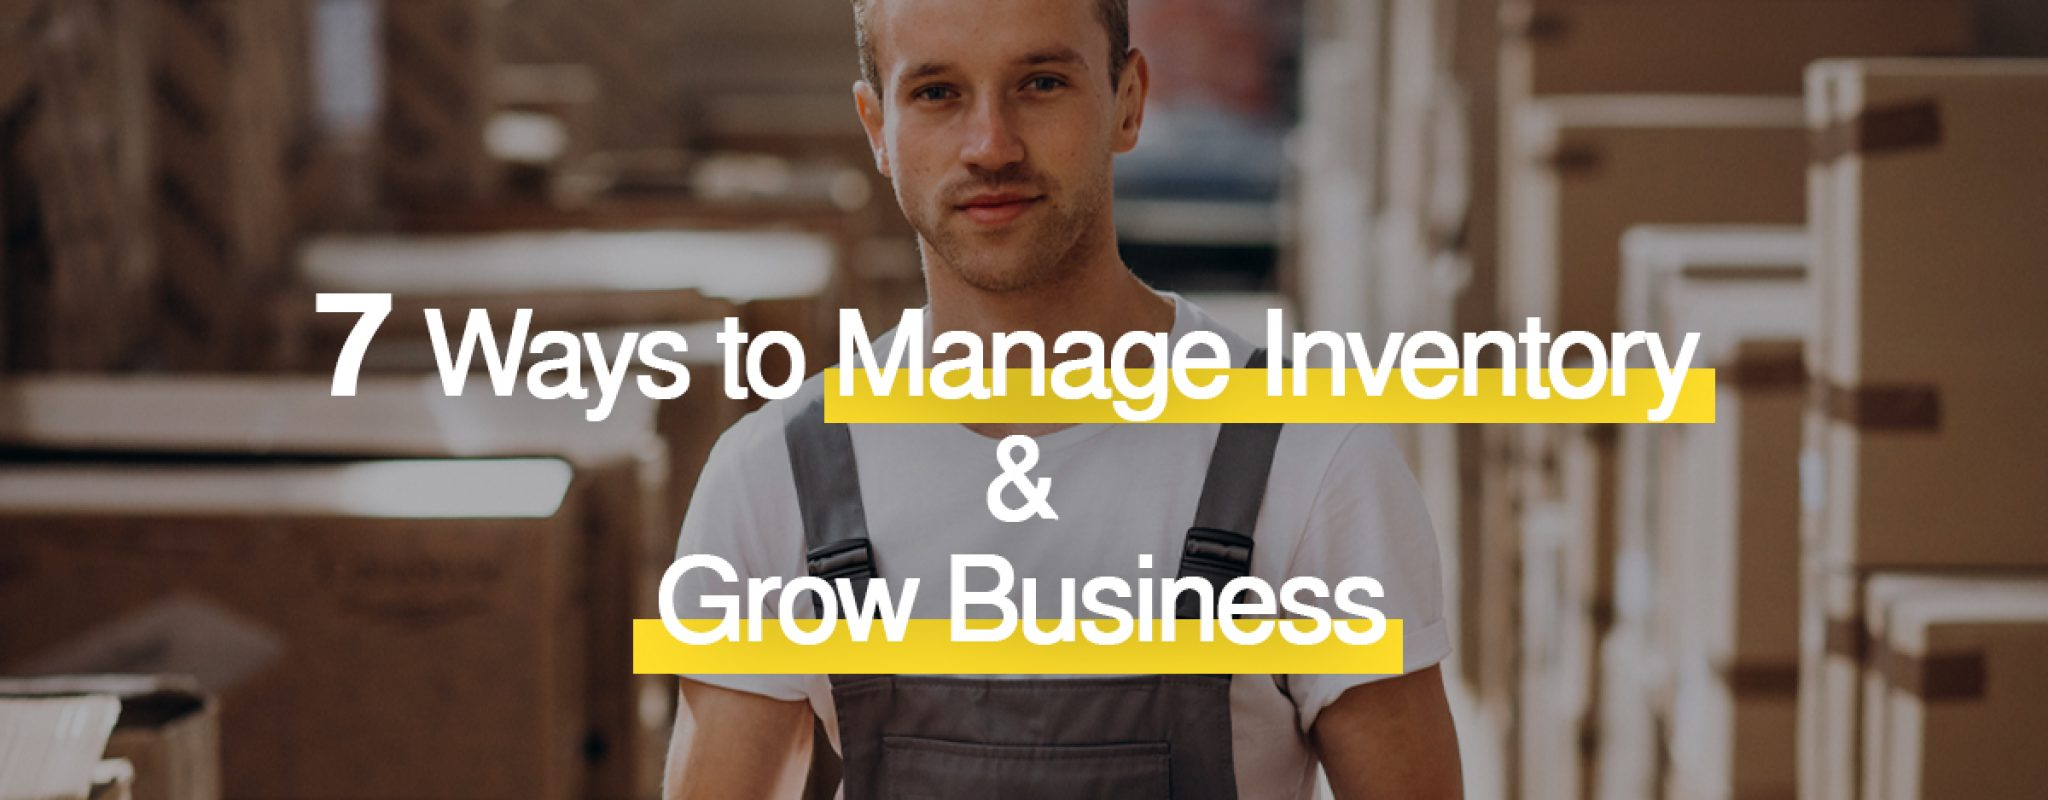 7 Ways to Manage your Inventory and Grow Your Business